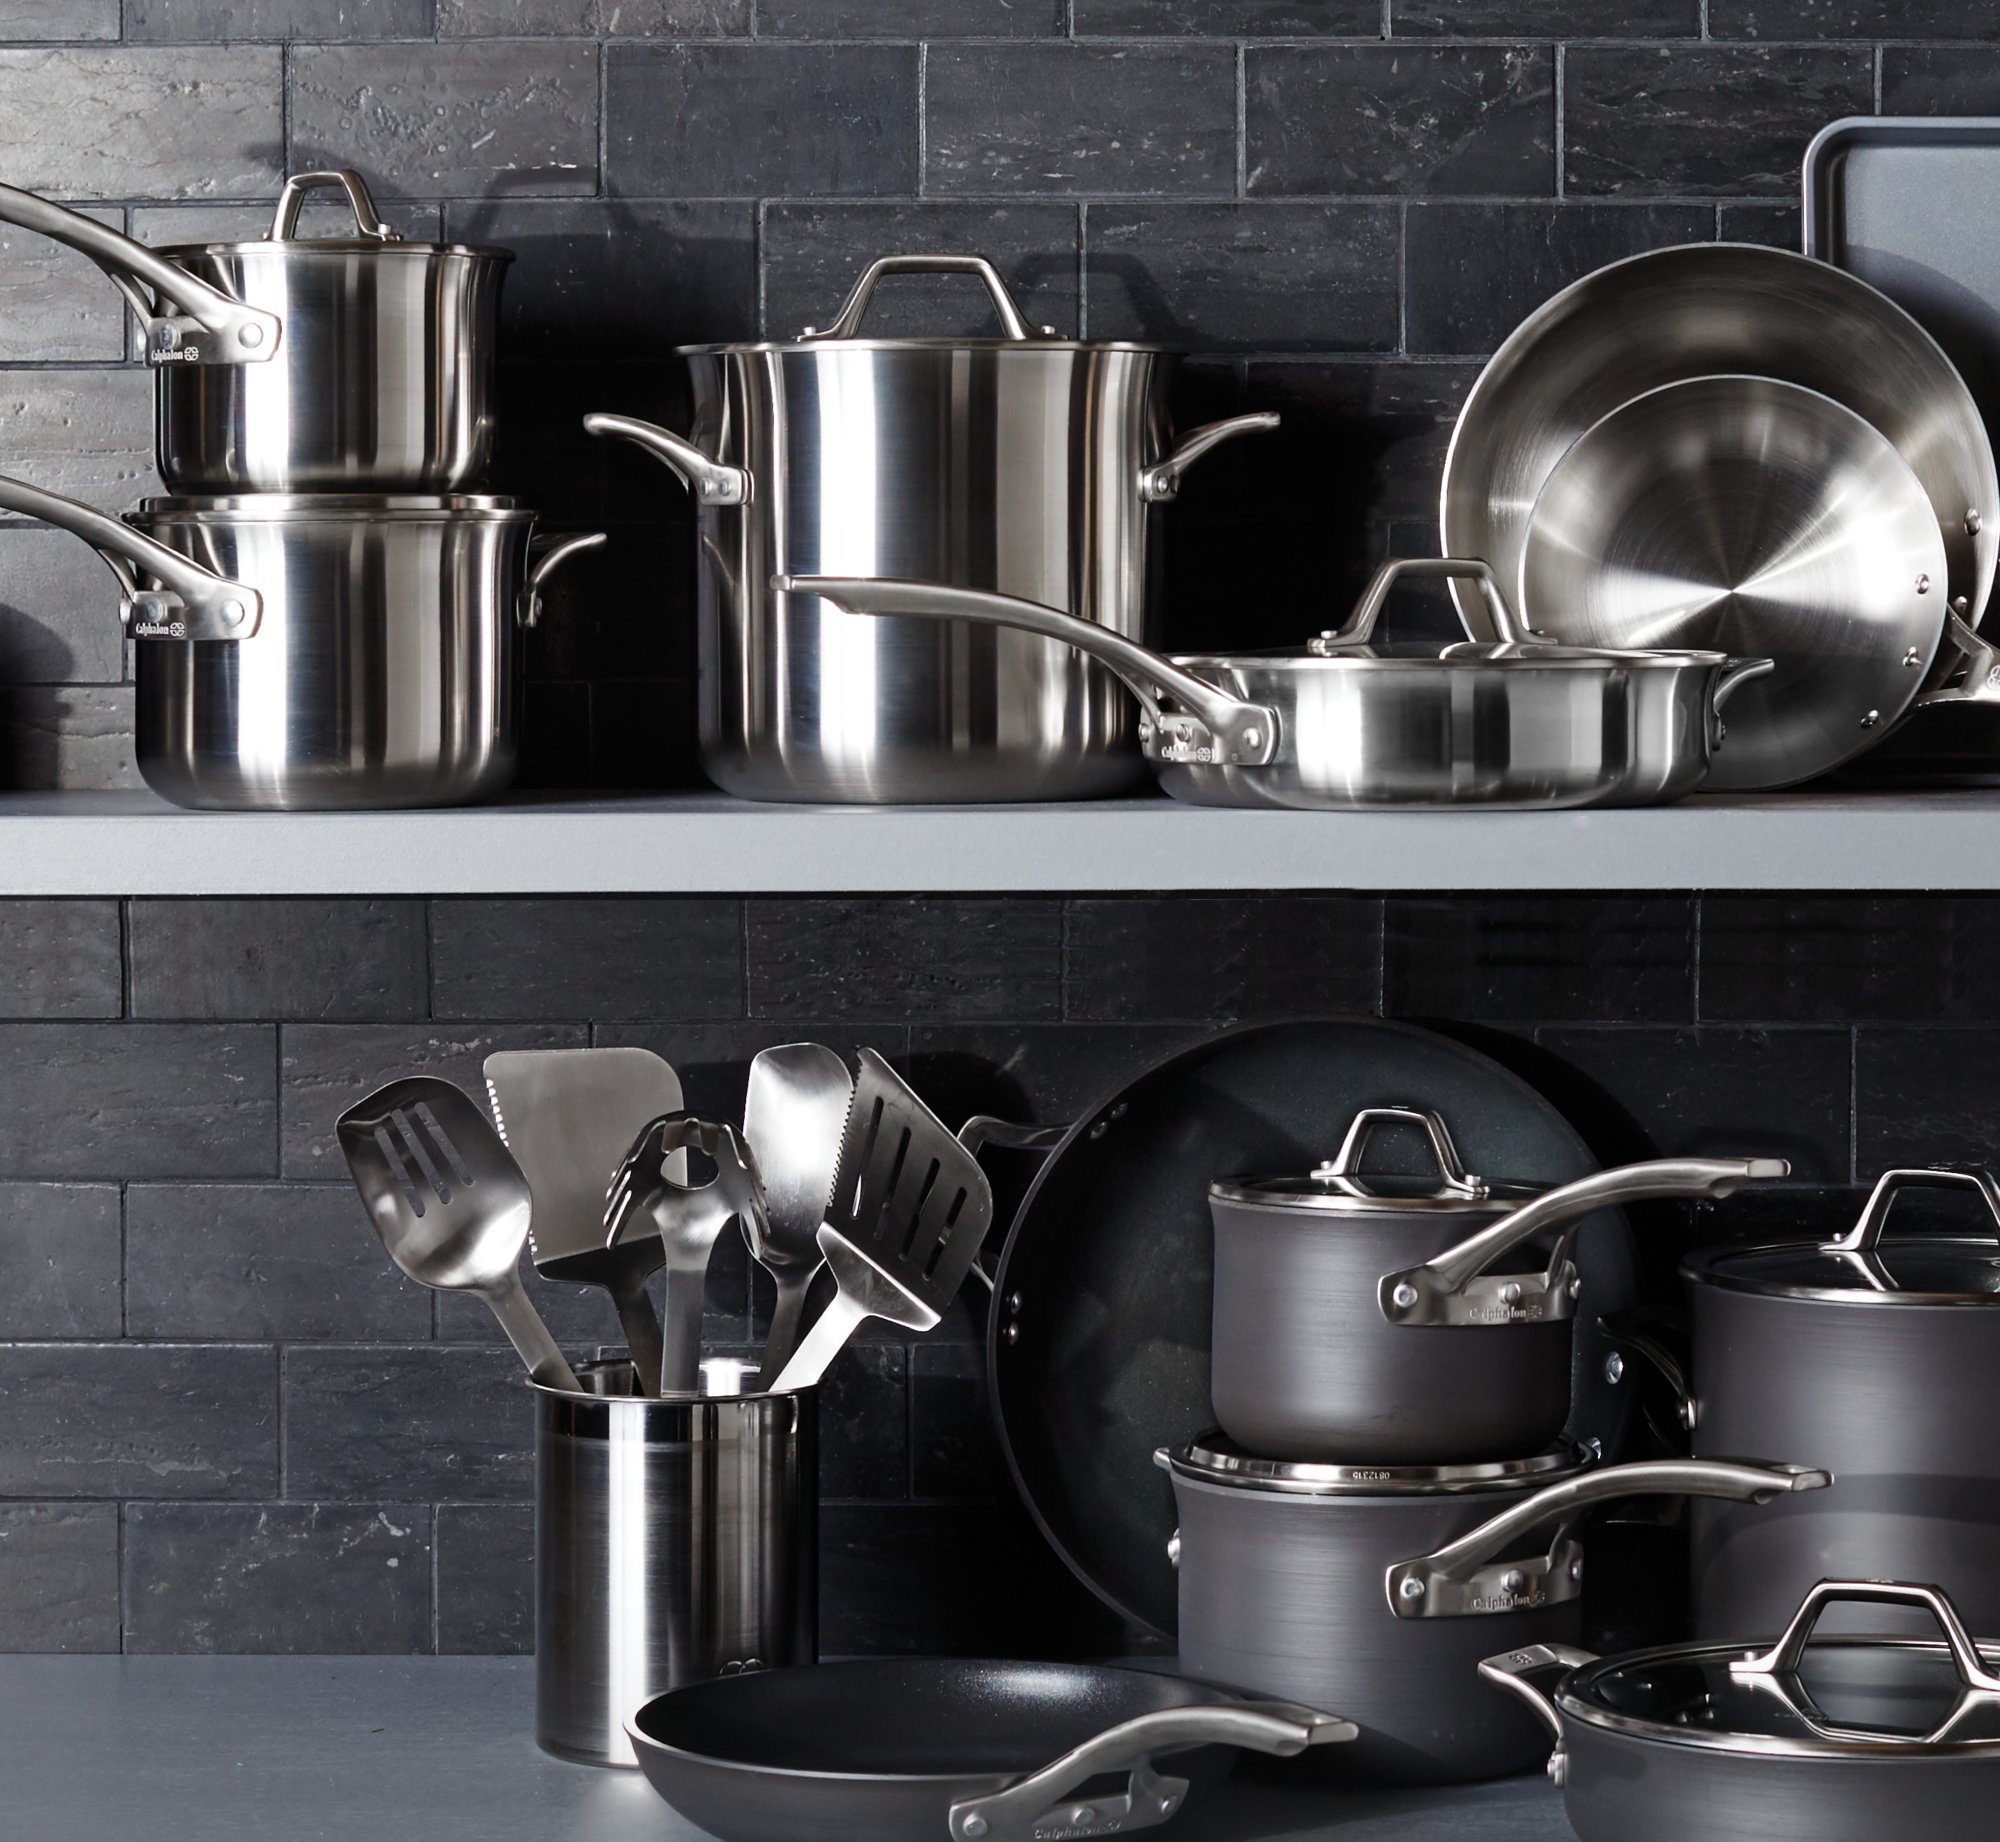 grey steel kitchenwares - Kitchen Wares